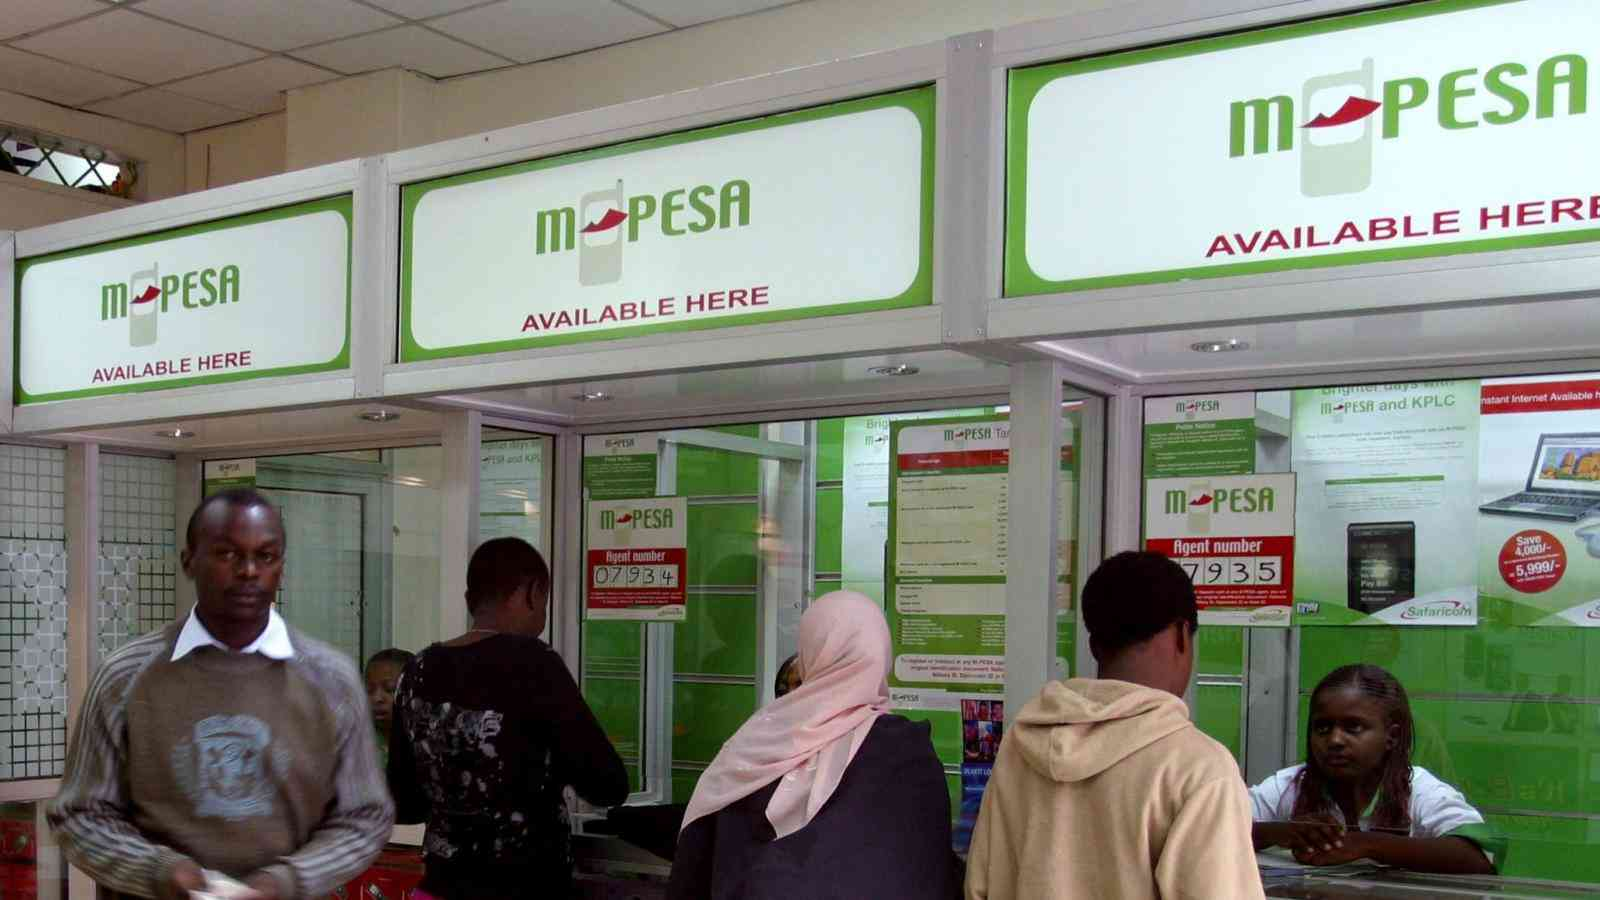 M-Pesa will be unavailable for 5 hours on Tuesday